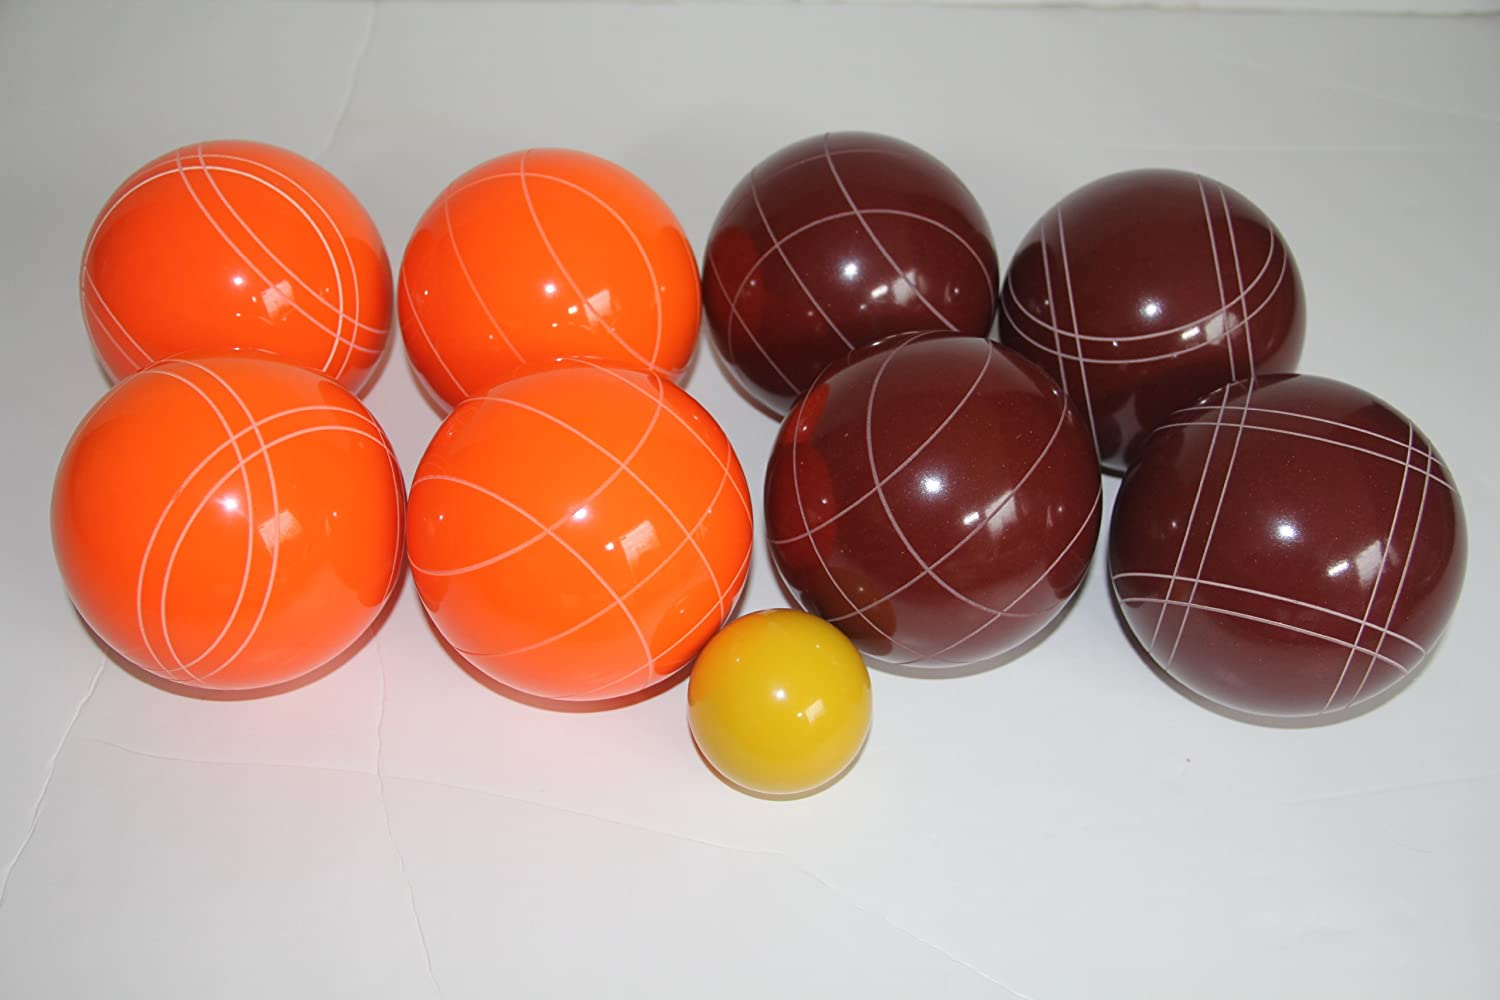 Premium Quality EPCO Tournament Bocce Set – 110mm Red and Orange Bocce Balls … günstig online kaufen